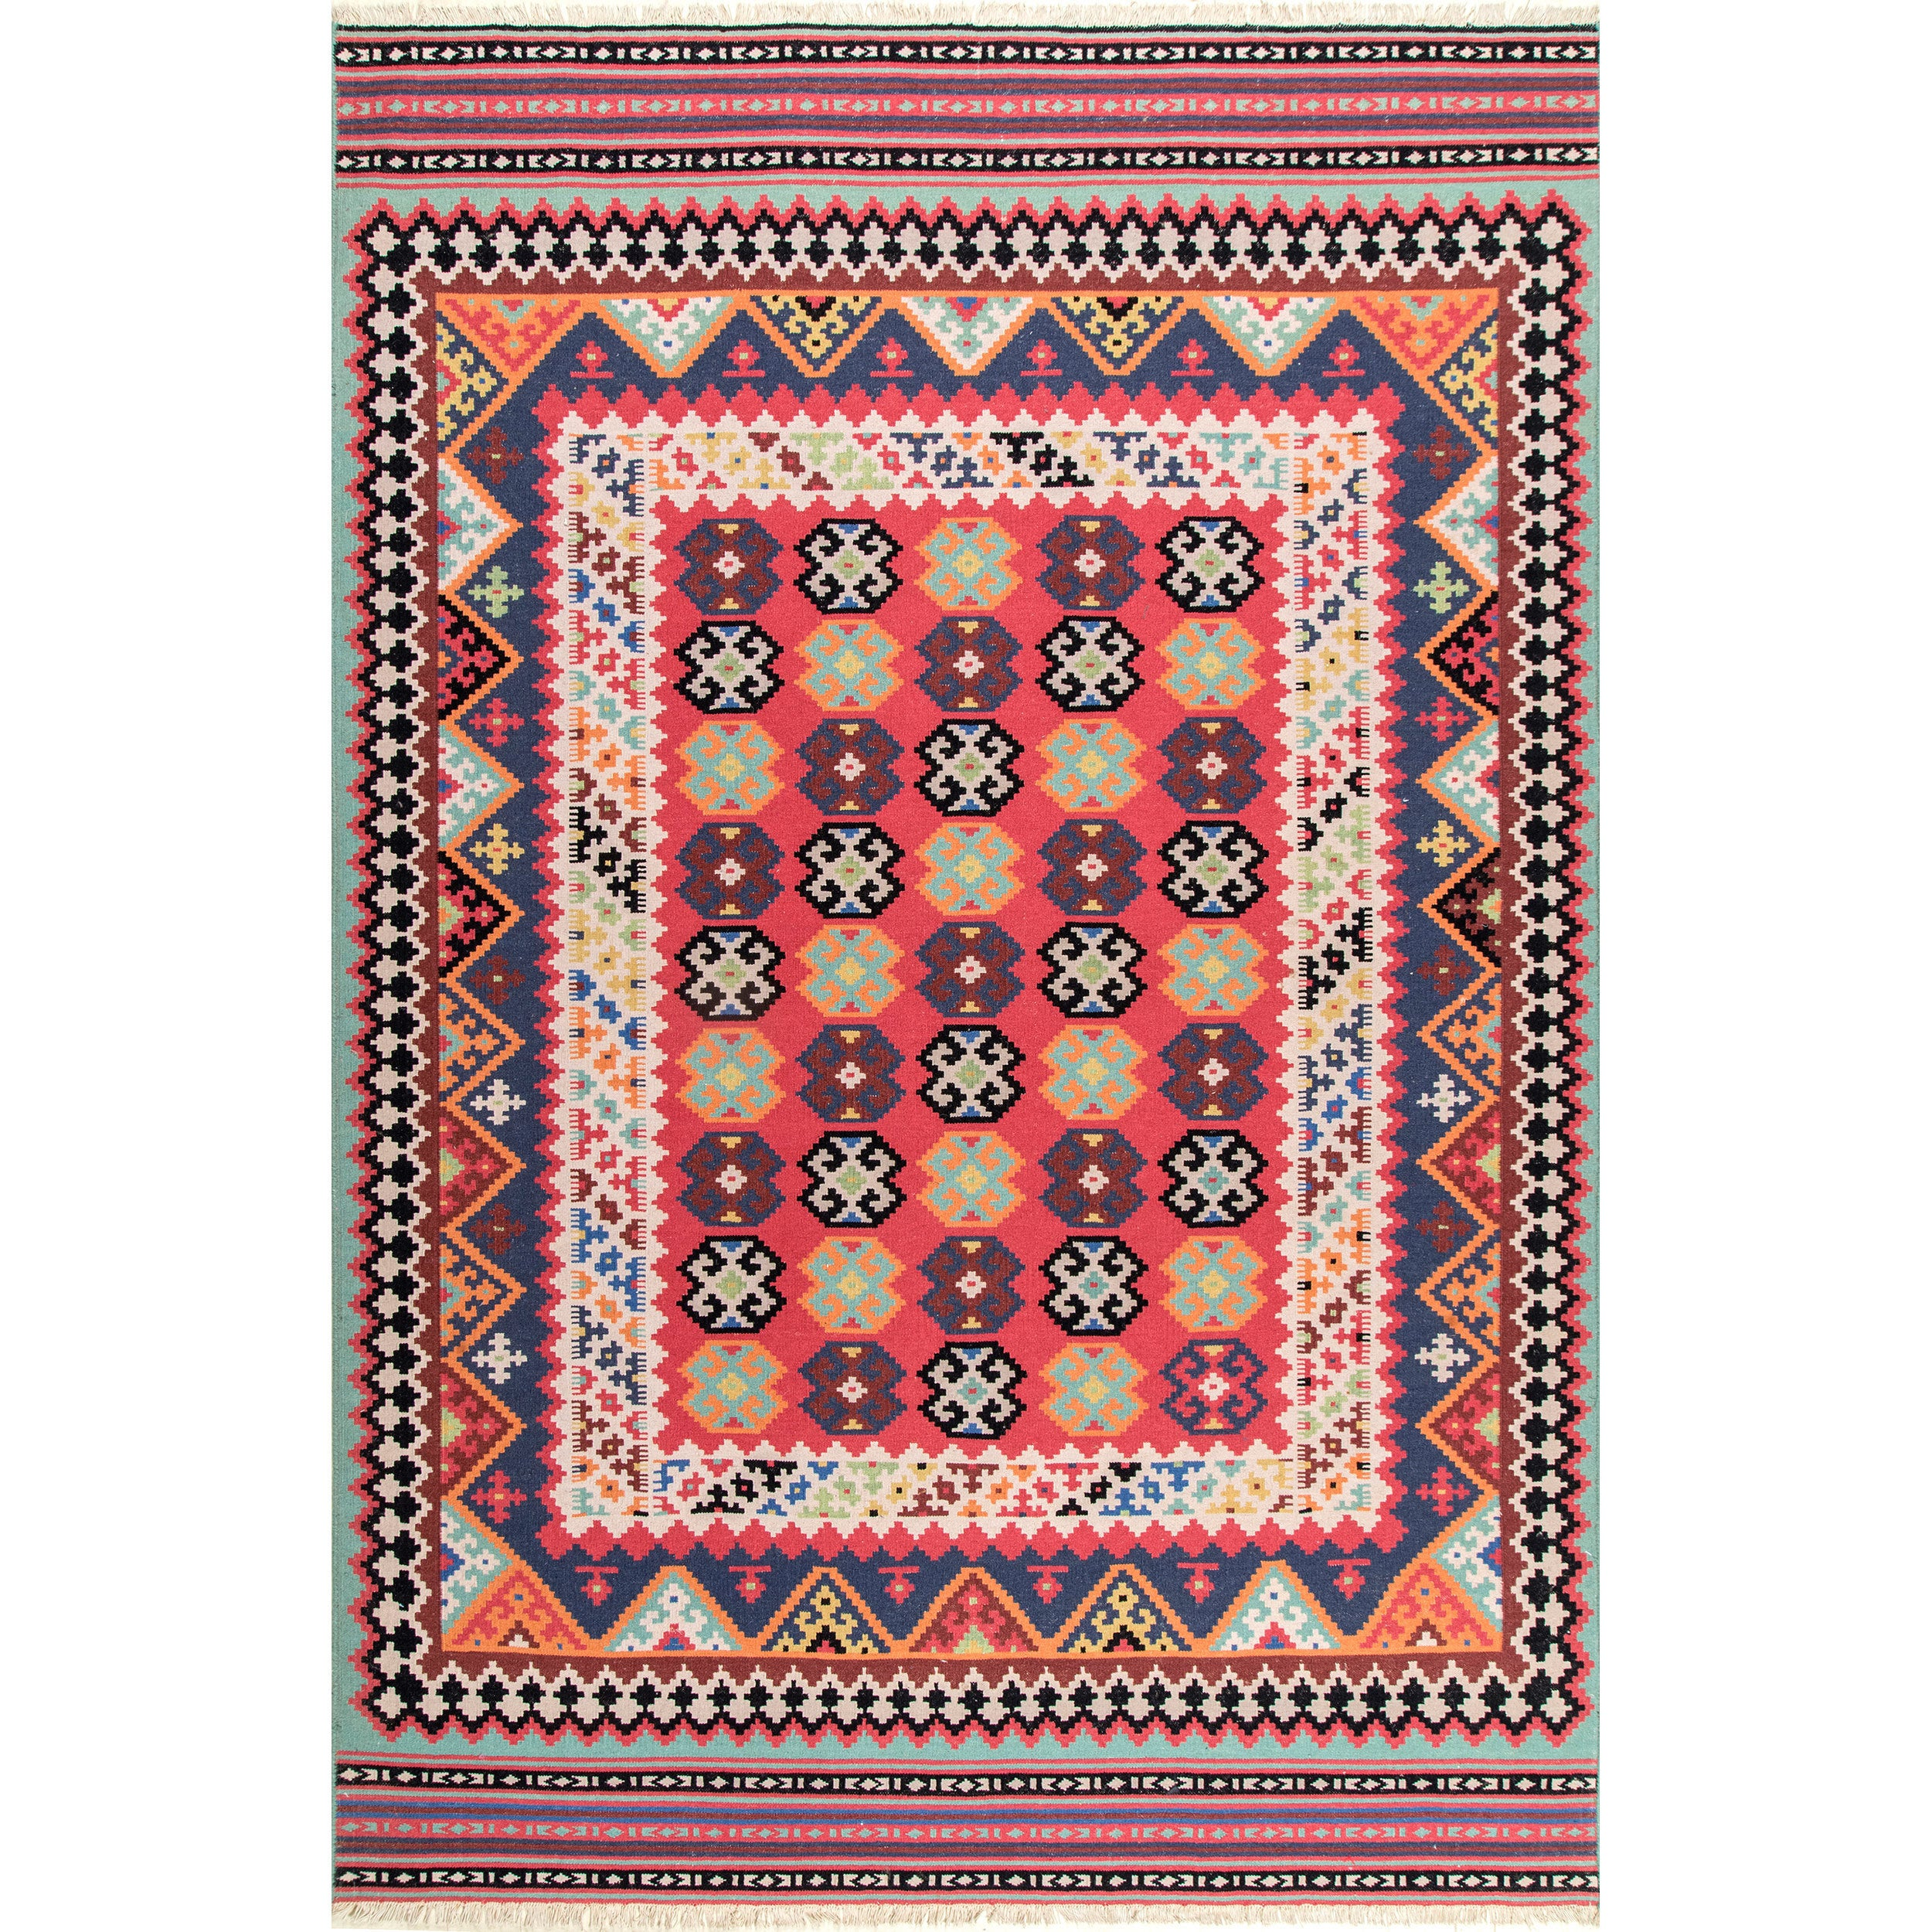 pink contemporary rug grey productpage large aztec style desktop aztecruglargegre editions swoon carousel